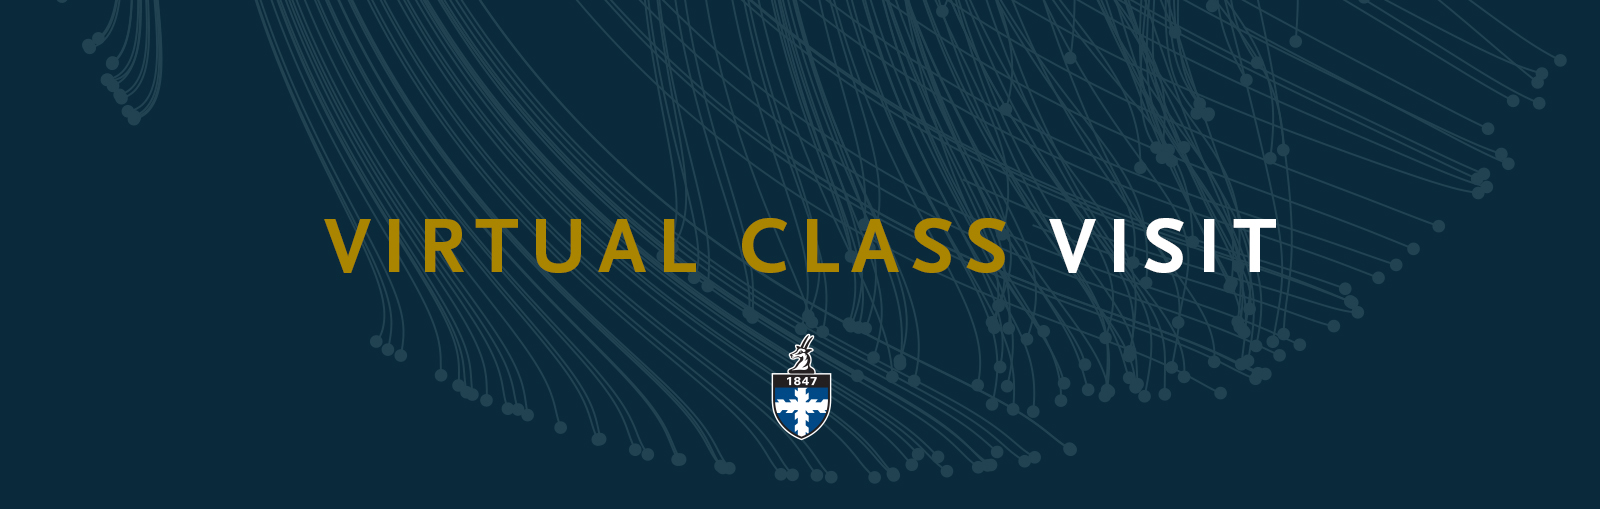 Banner that says Virtual Class Visit